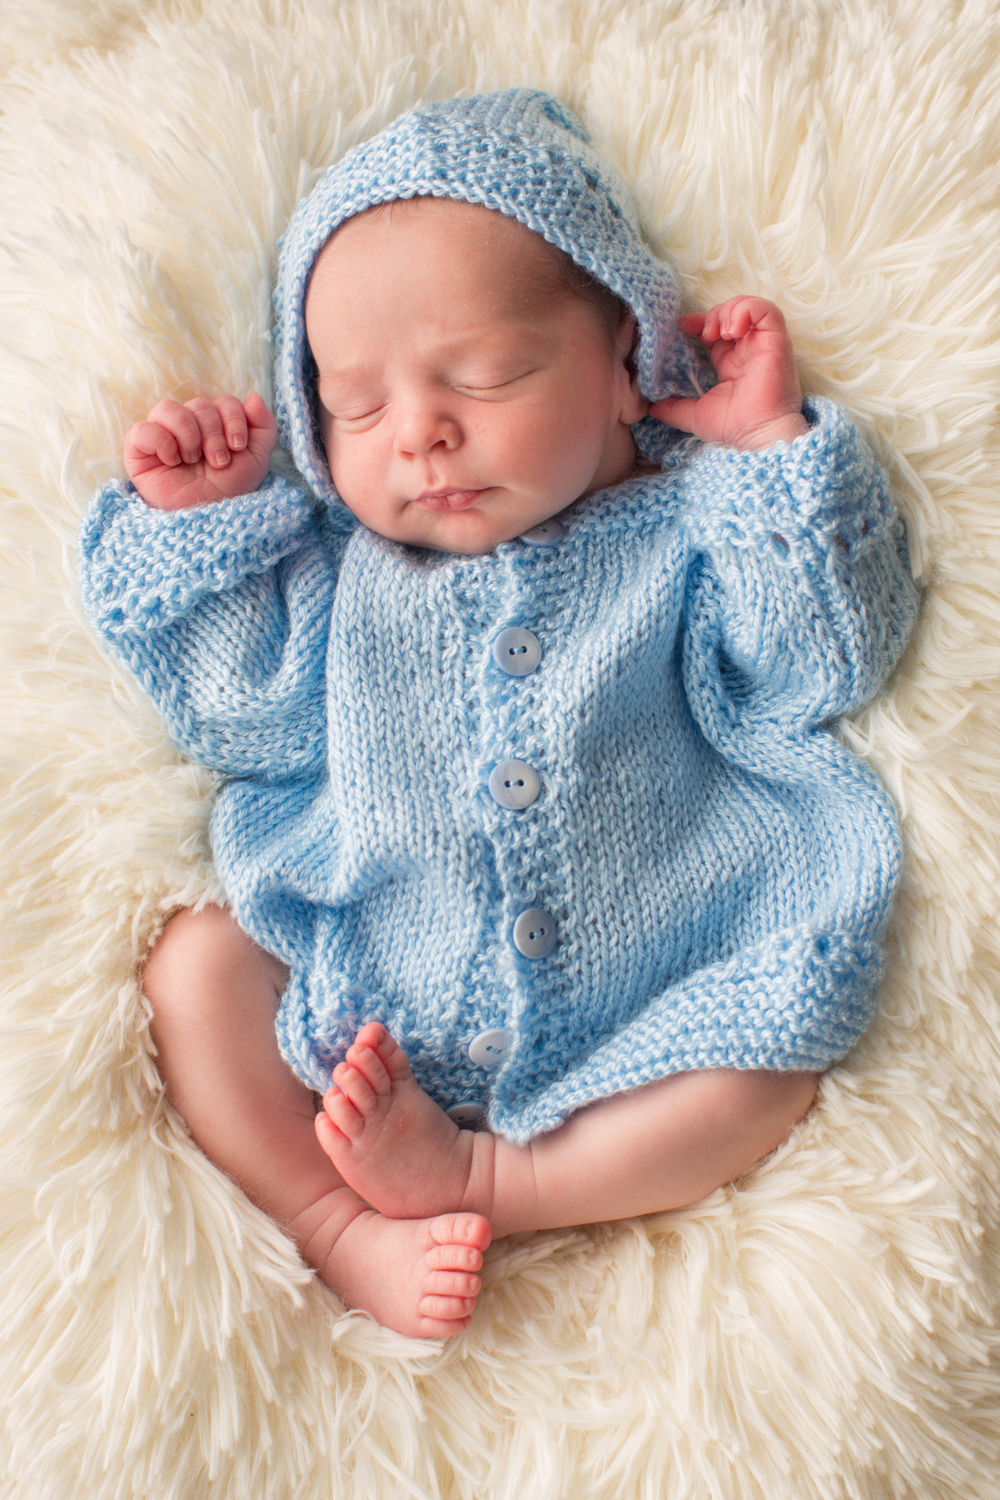 newborn baby in blue .jpg